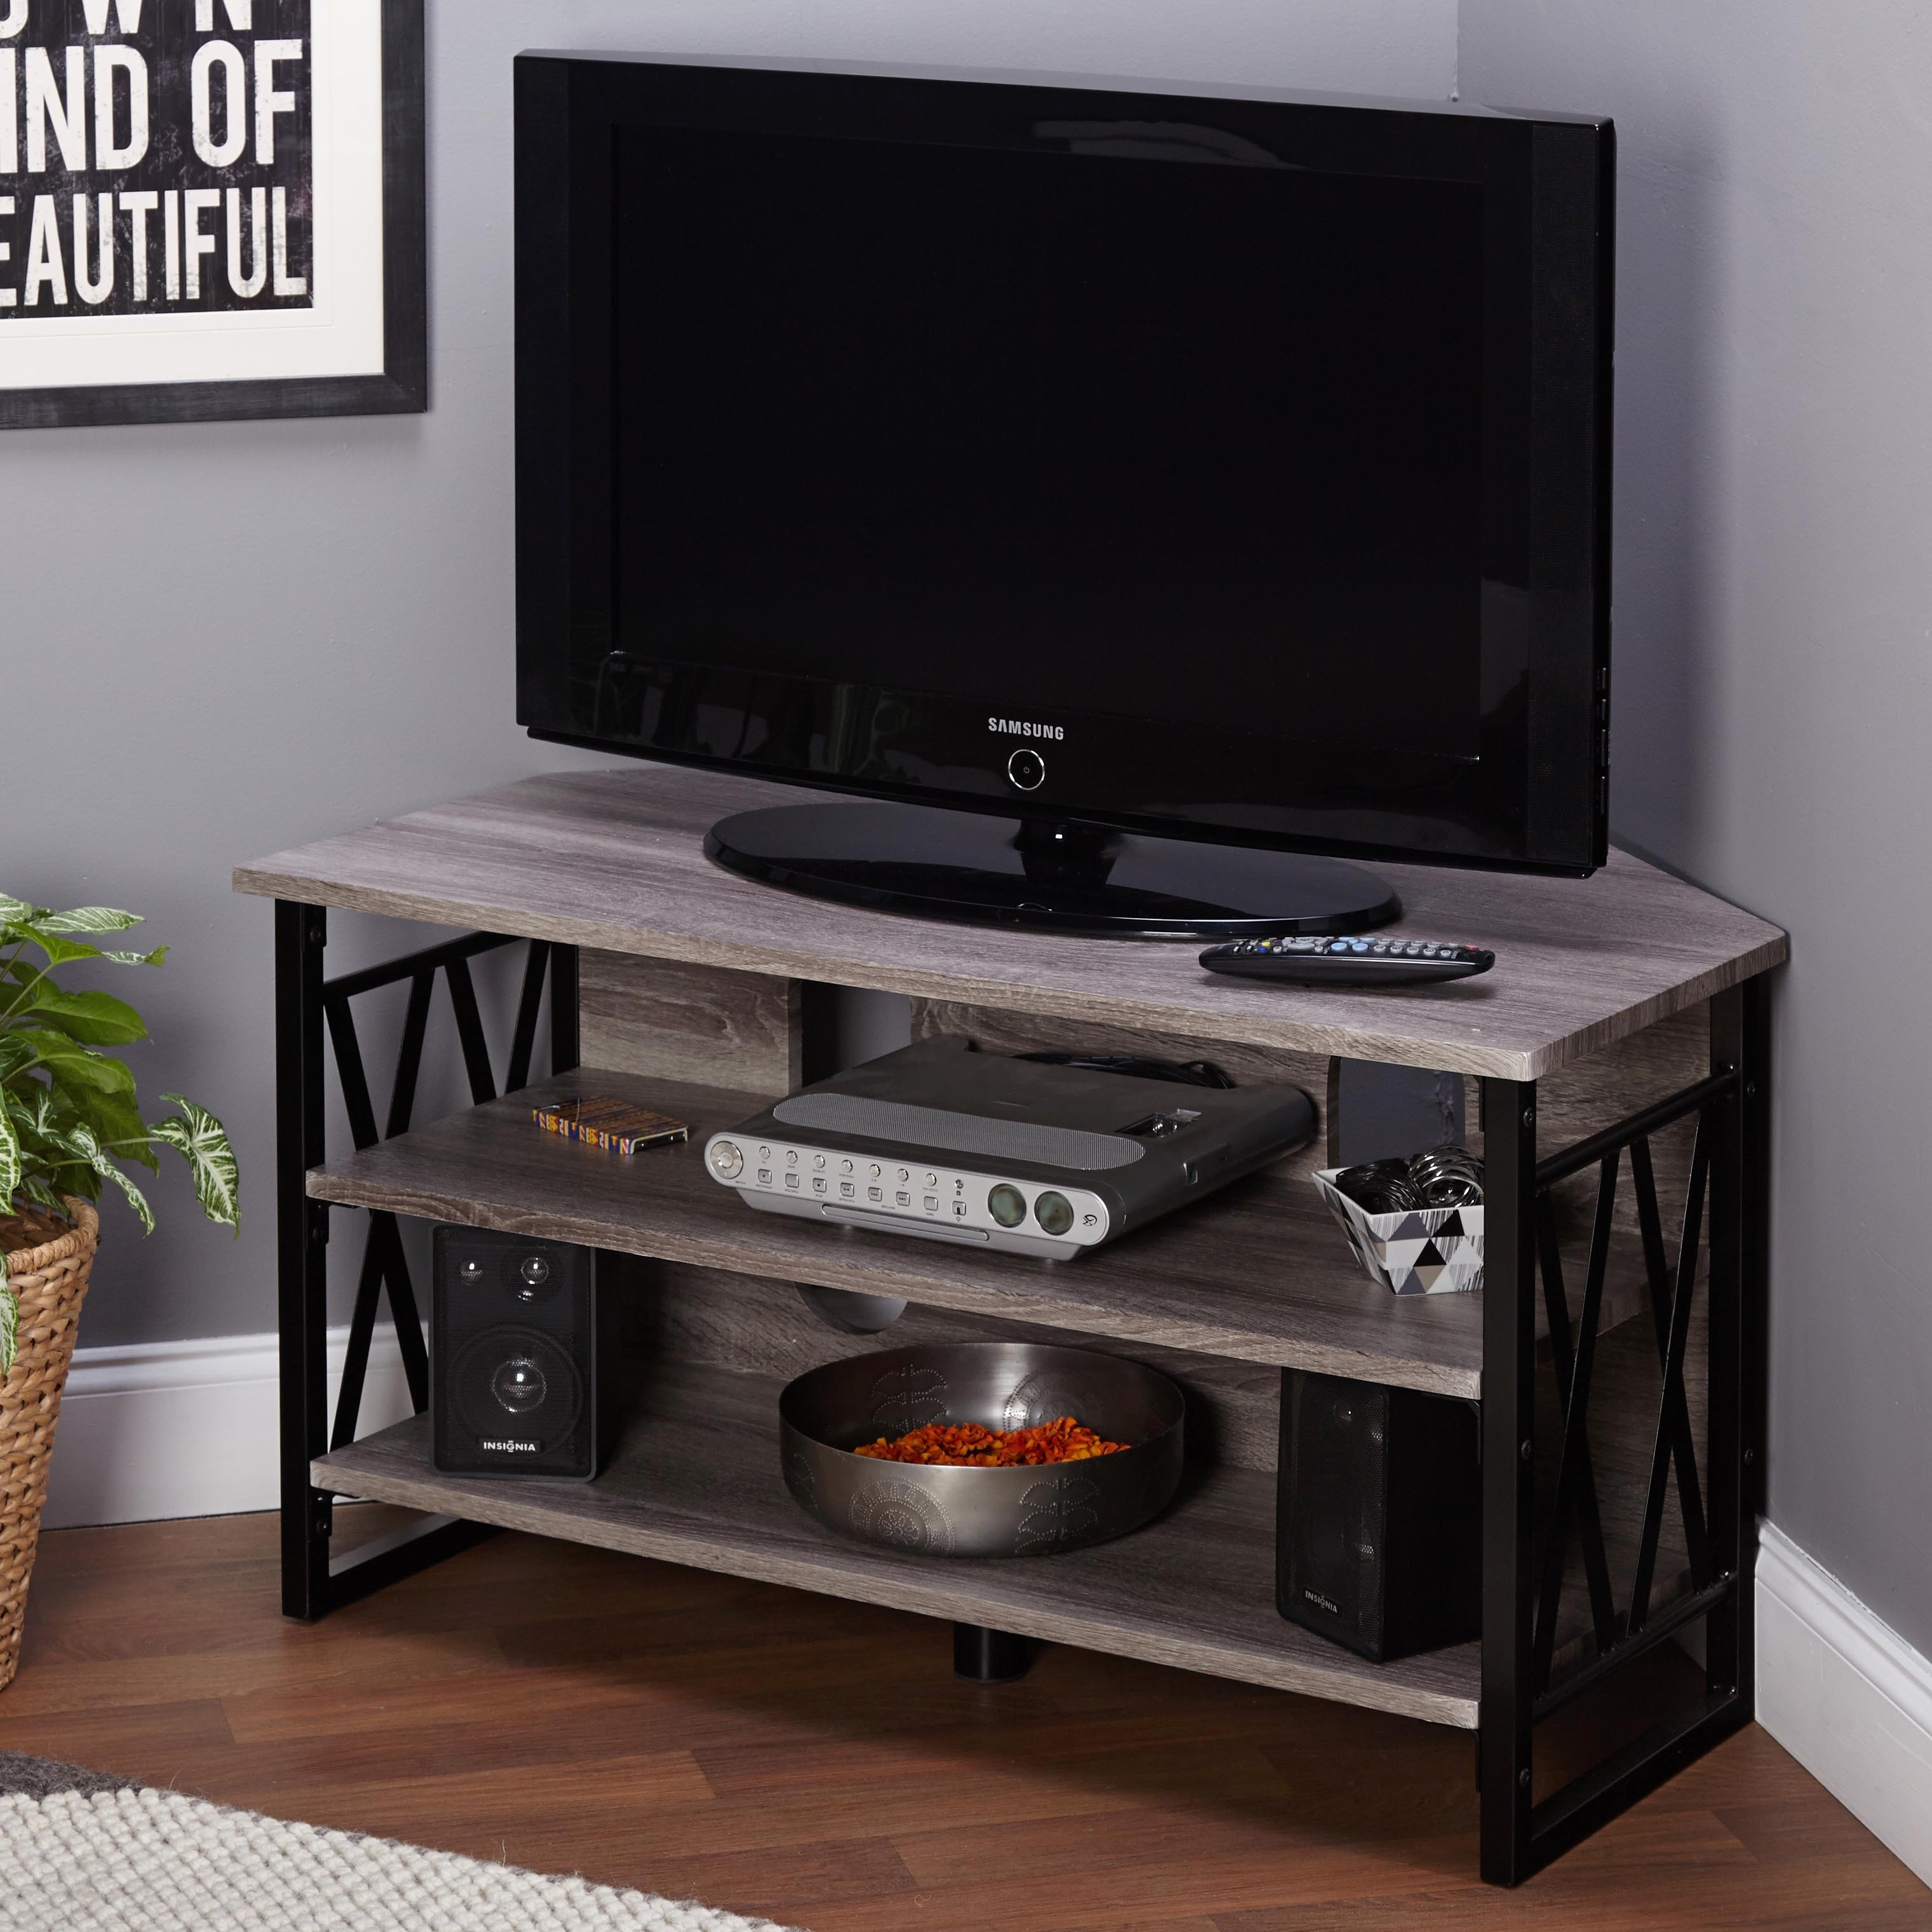 fascinating television flat reviews cm media screens ibf inspiration wayfair tv baby personable three plant corner shelf wood for stand mount nursery adorable with indoor entertainment posts spartansburg stands